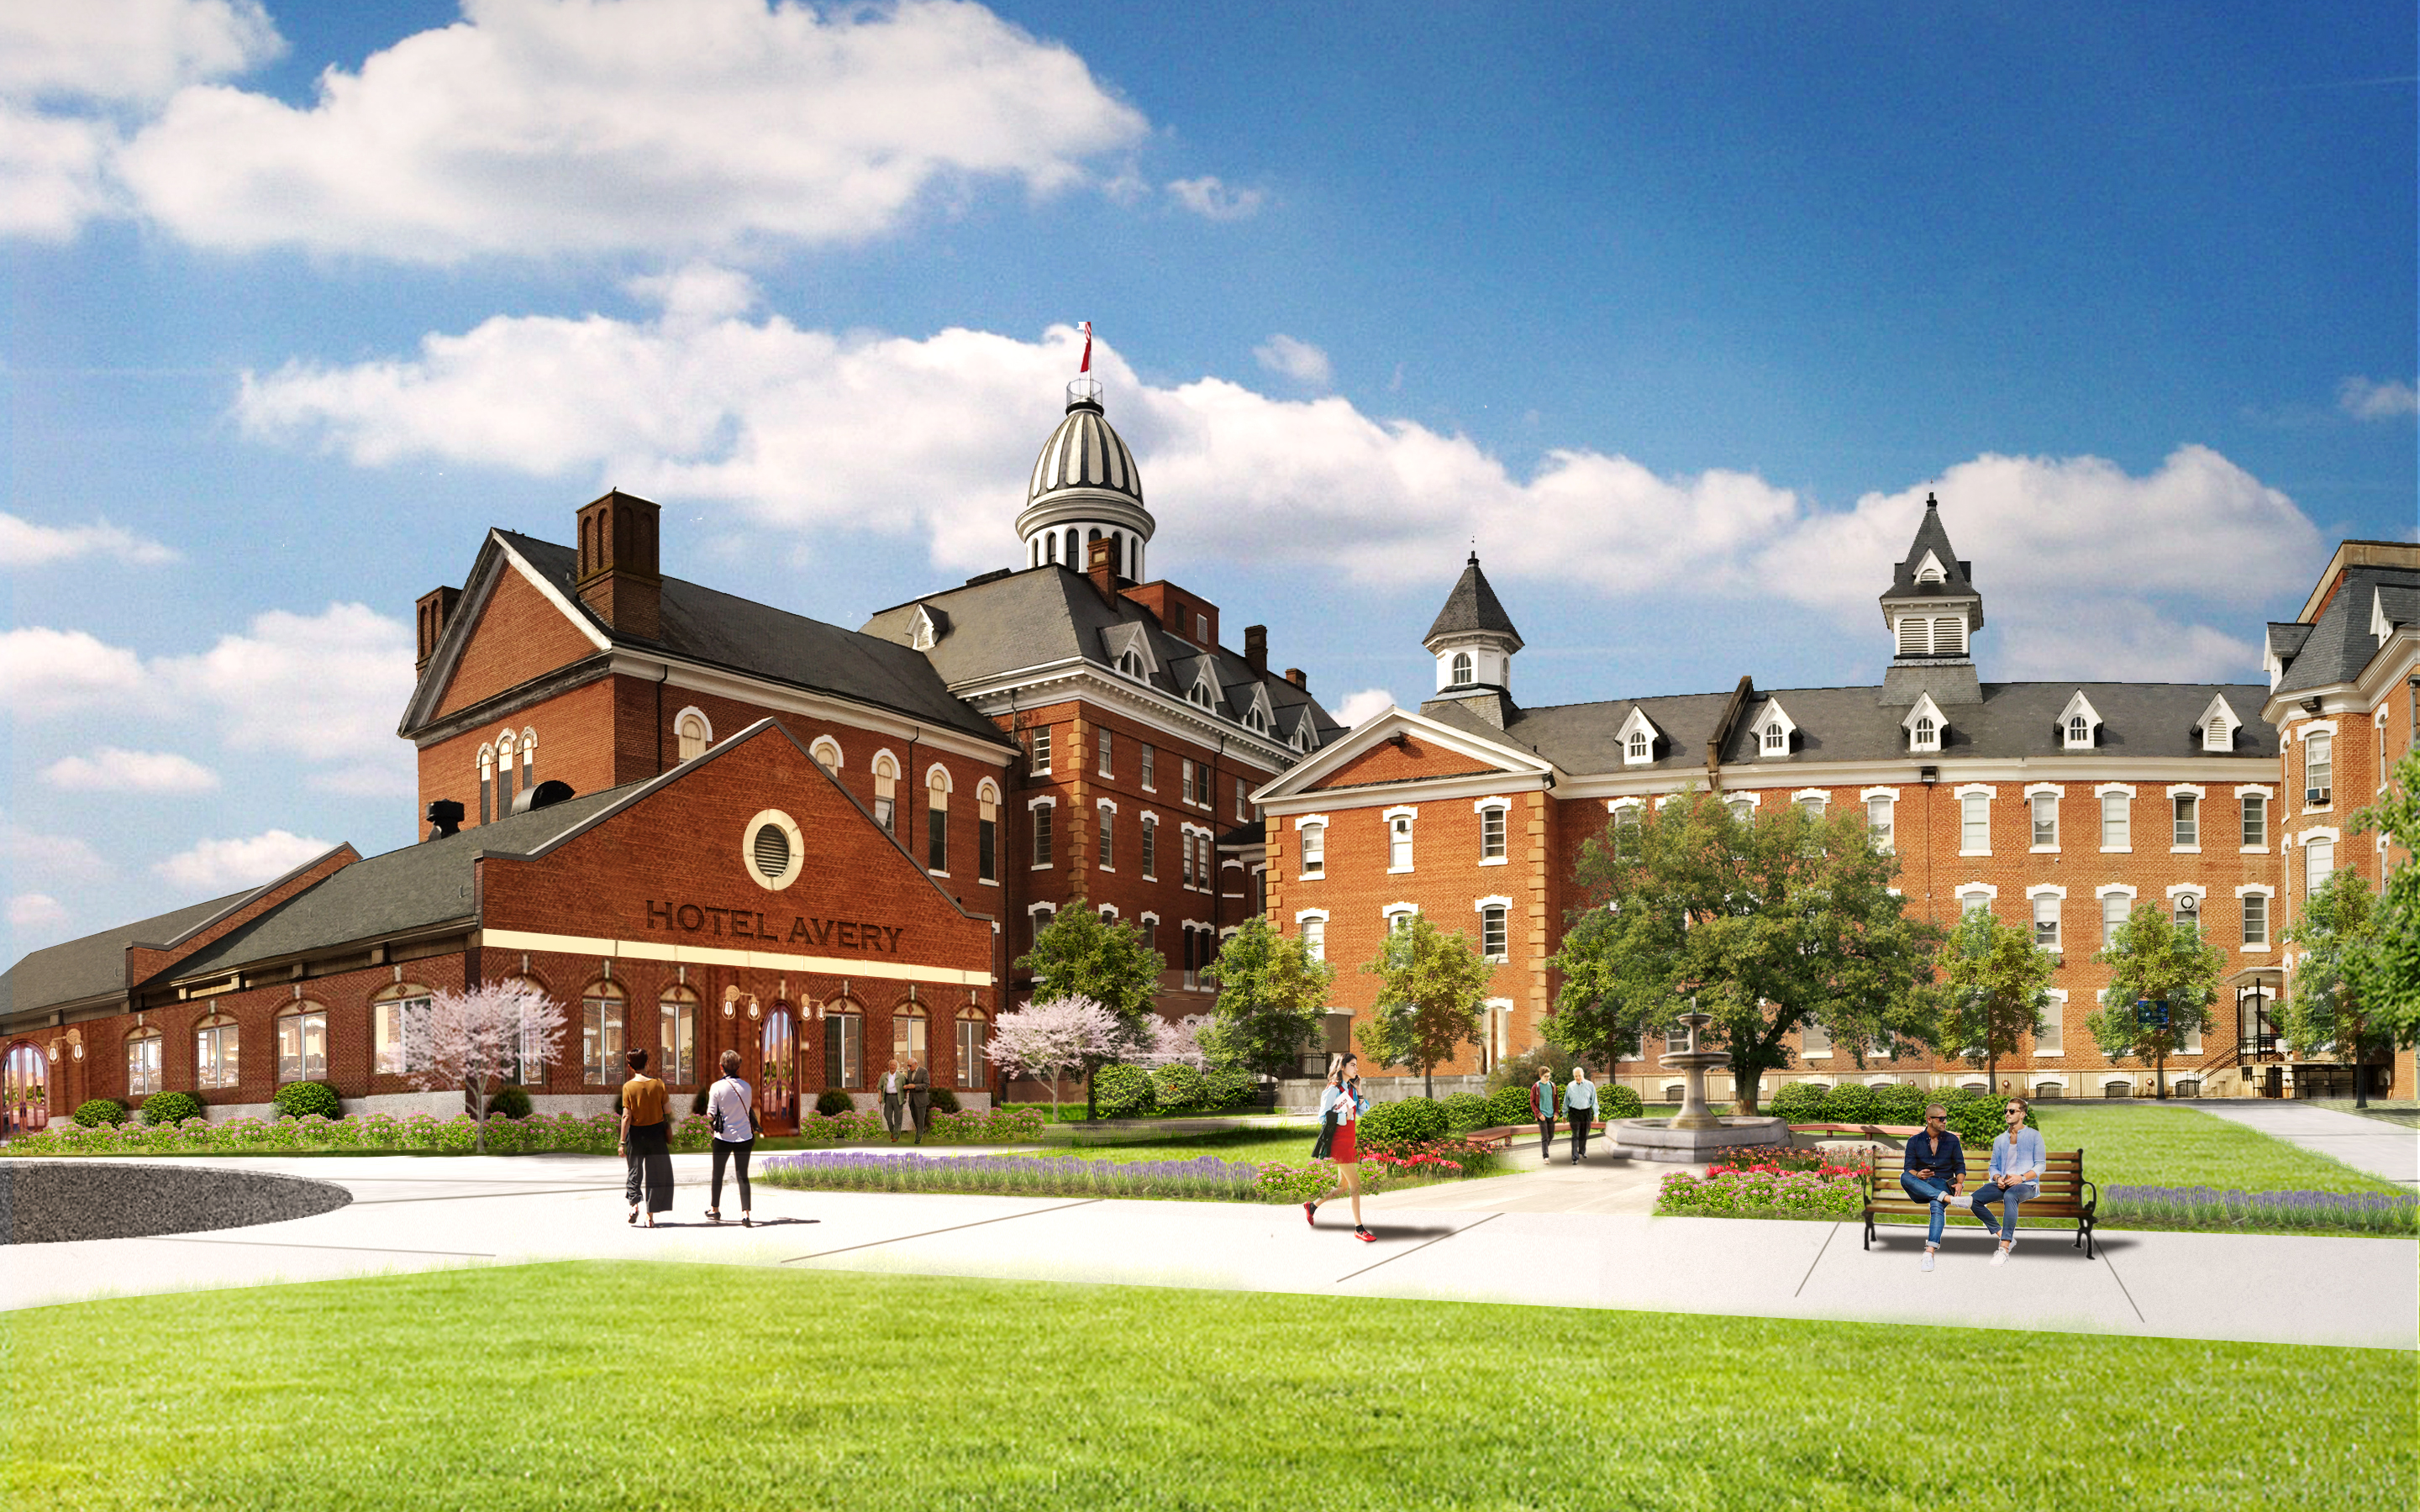 DFI Facilitates New Vision for Historic Broughton Hospital Campus